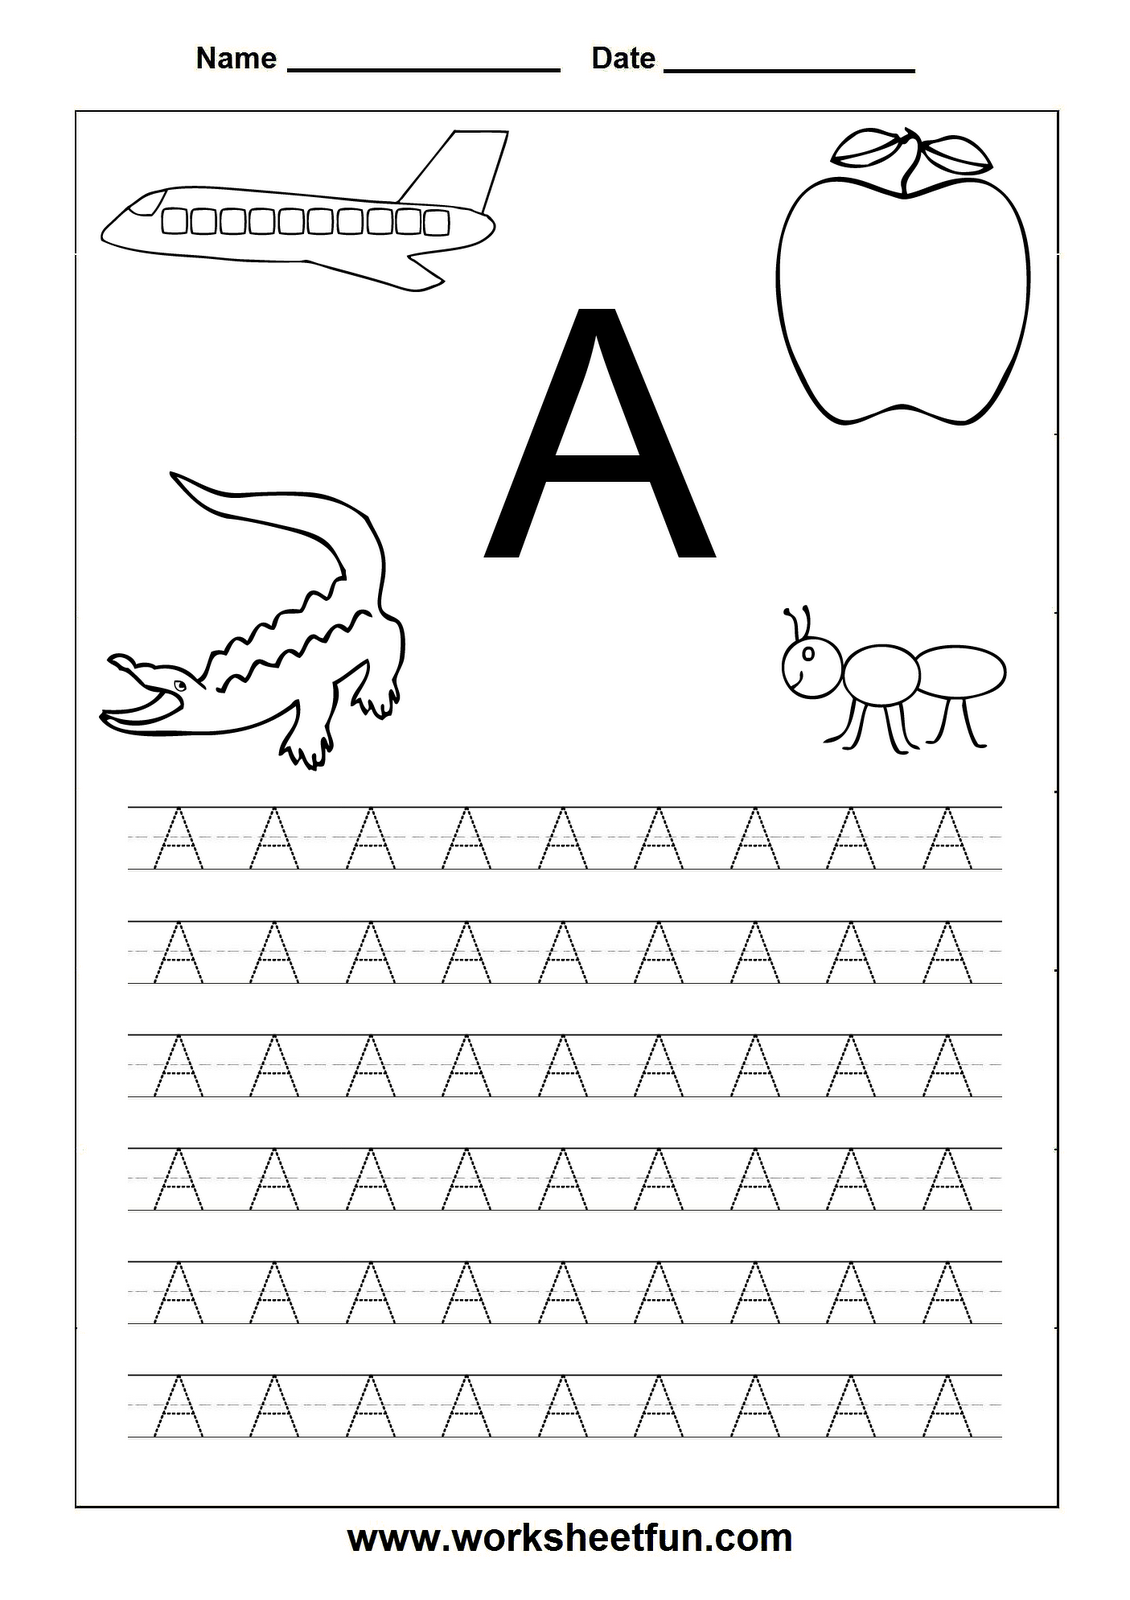 Free Worksheet Free Printable Preschool Worksheets Tracing Letters 4 best images of printable letter s tracing worksheets preschool 17 about letters on pinterest handwriting and alphabet workshee